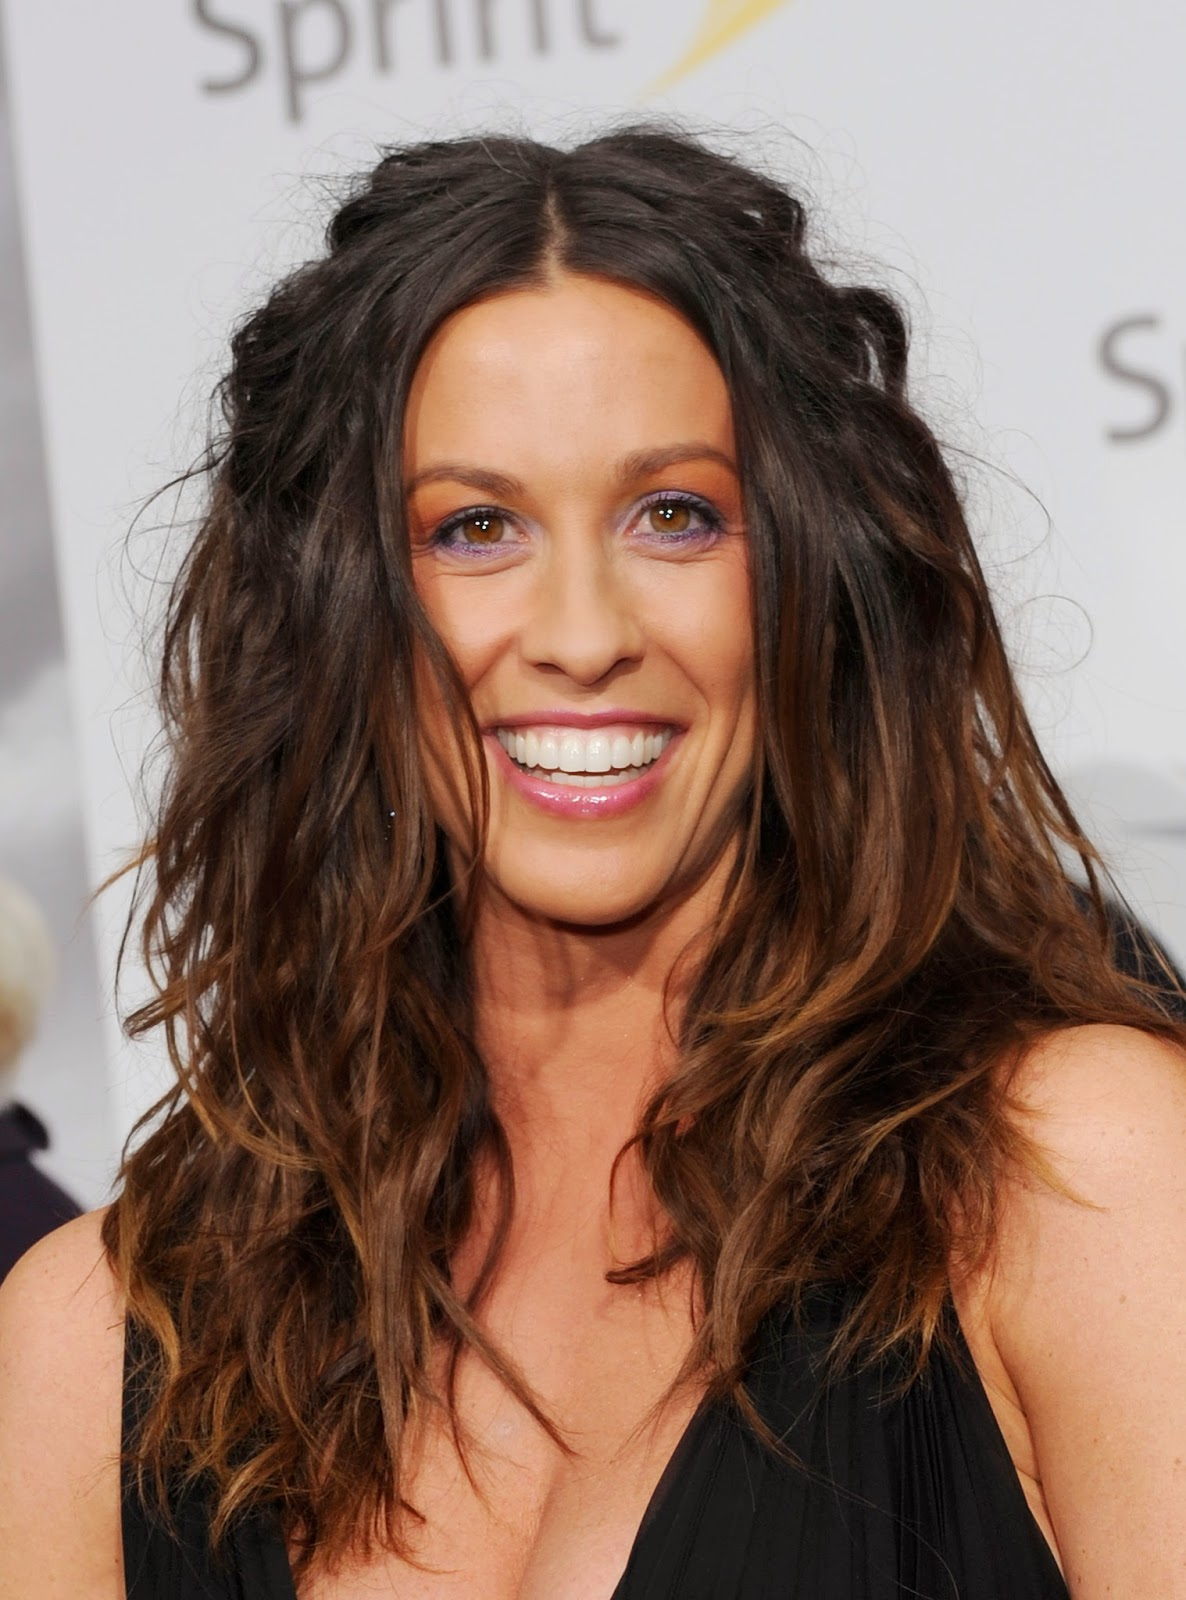 alanis morissette - photo #16